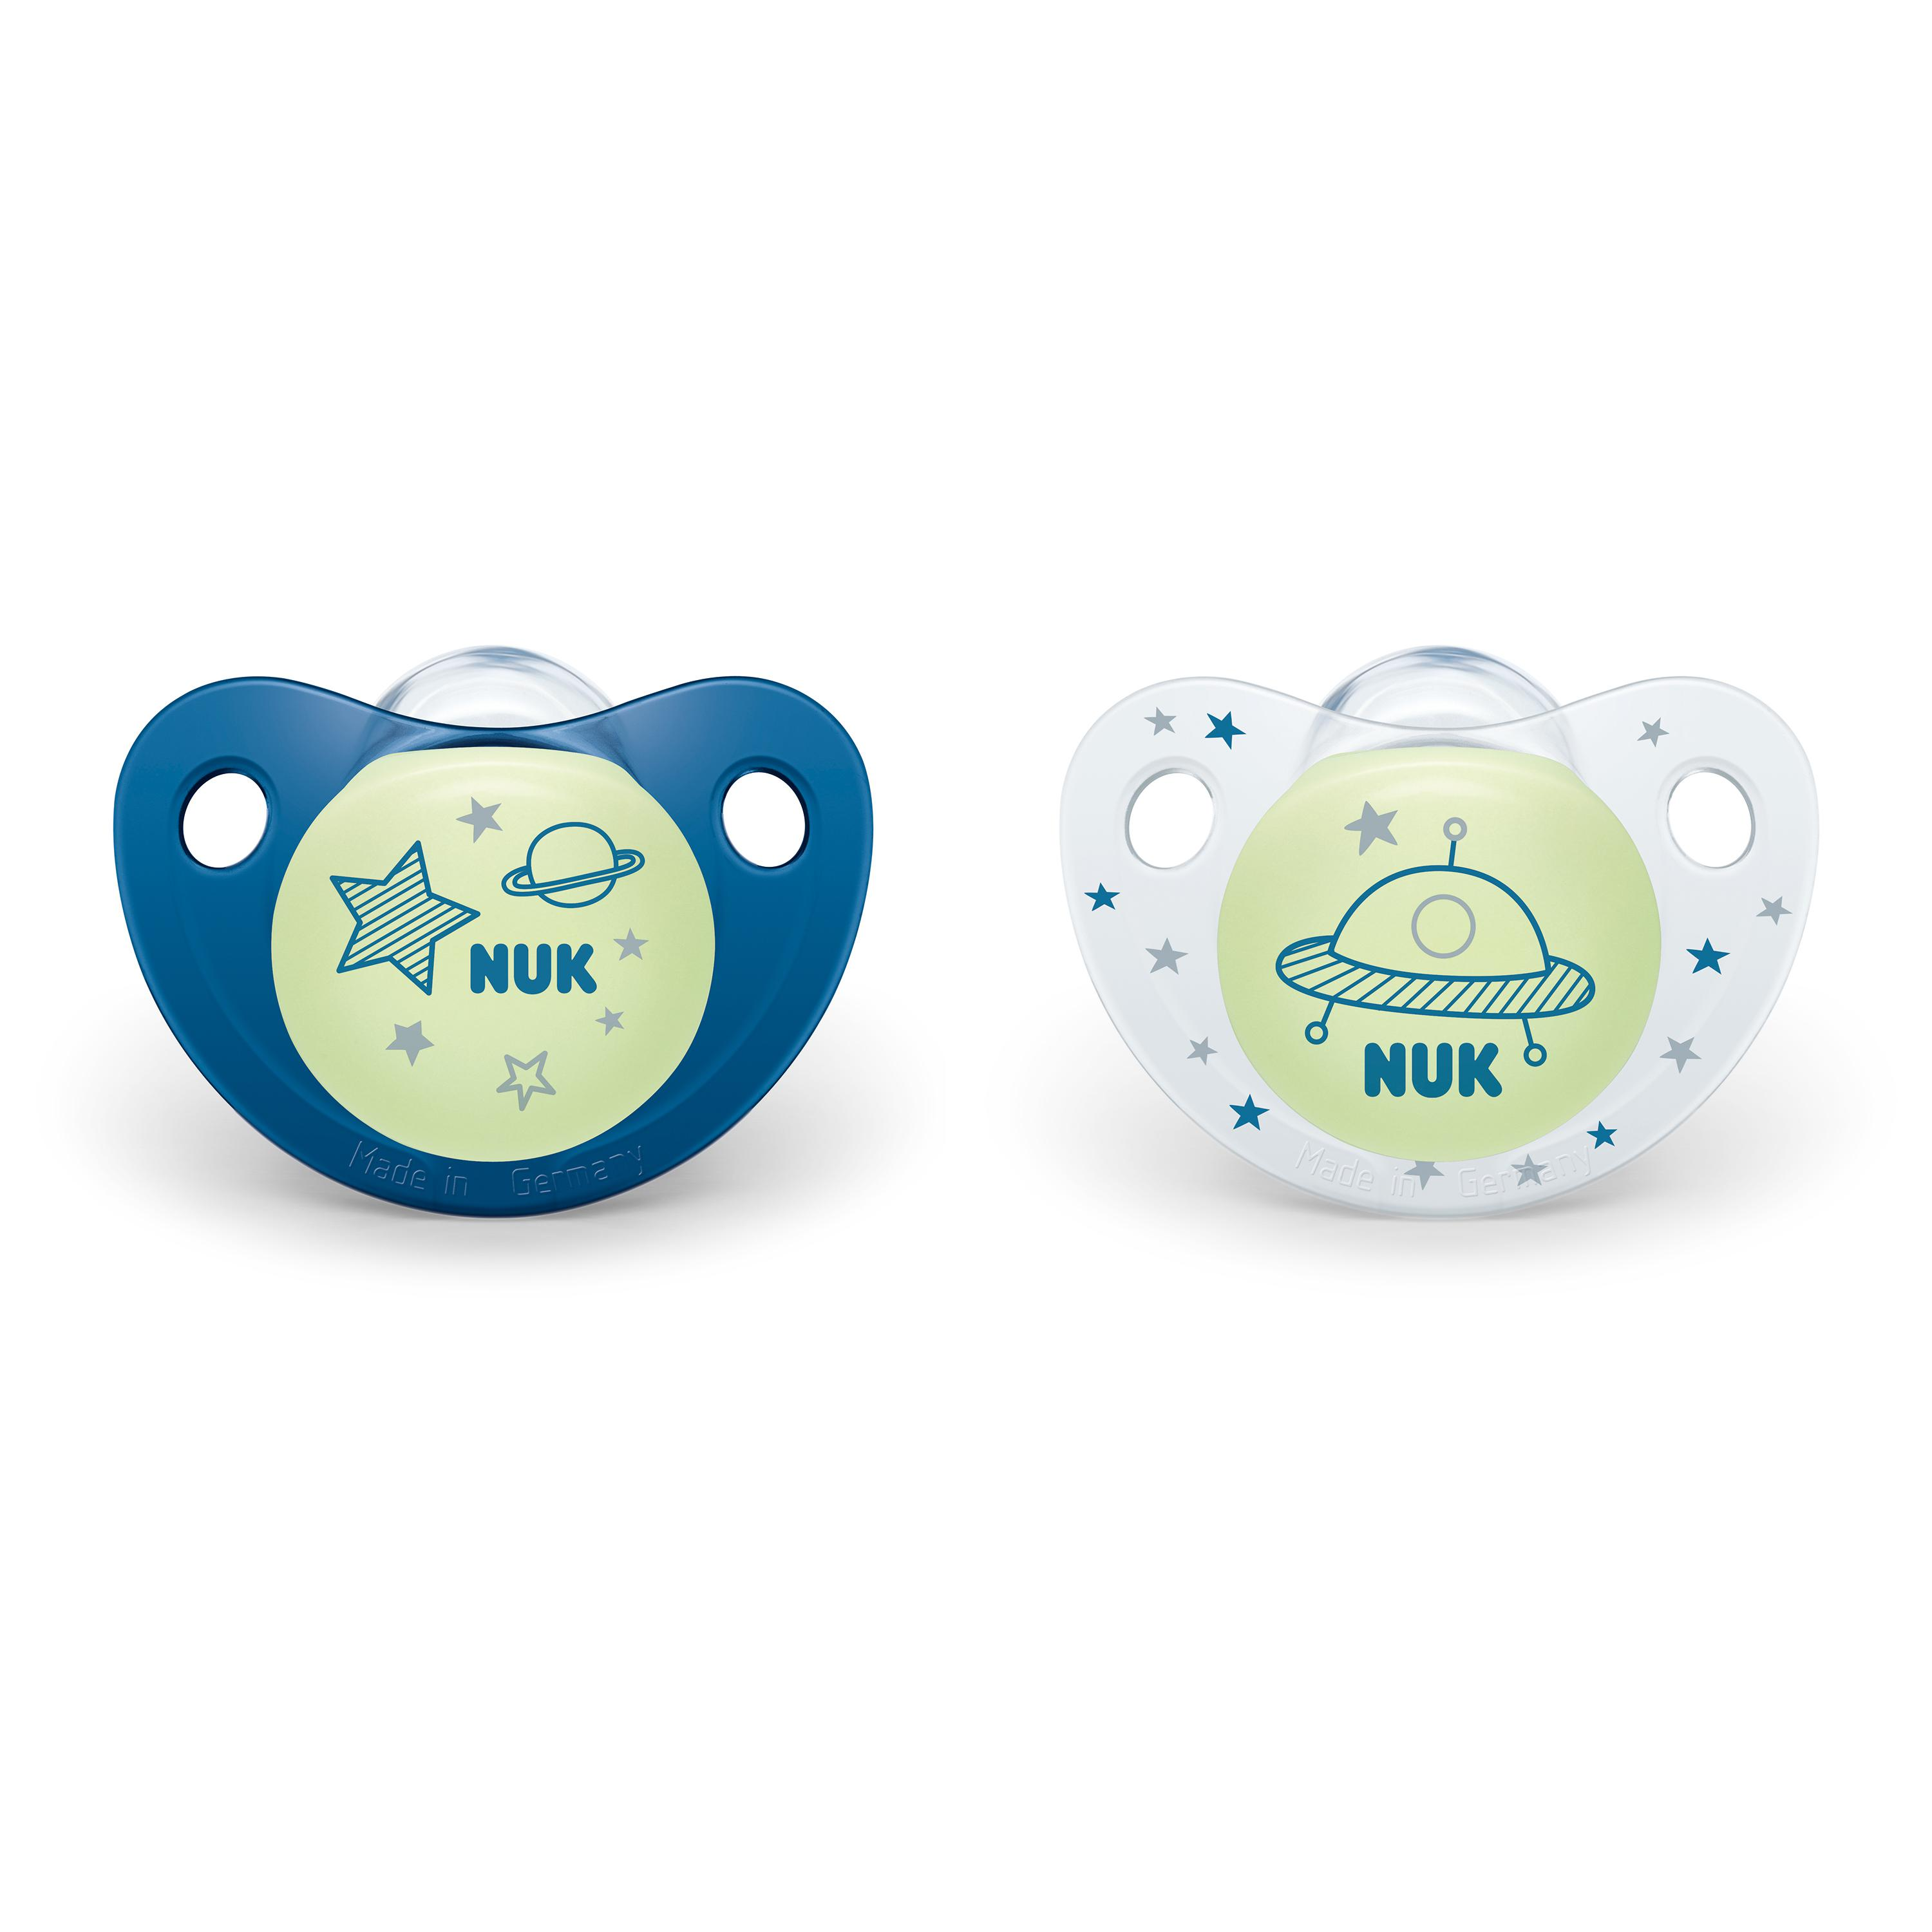 Cute-as-a-Button Glow-in-the-Dark Orthodontic Pacifiers, 6-18 Months, 2-Pack Product Image 1 of 2